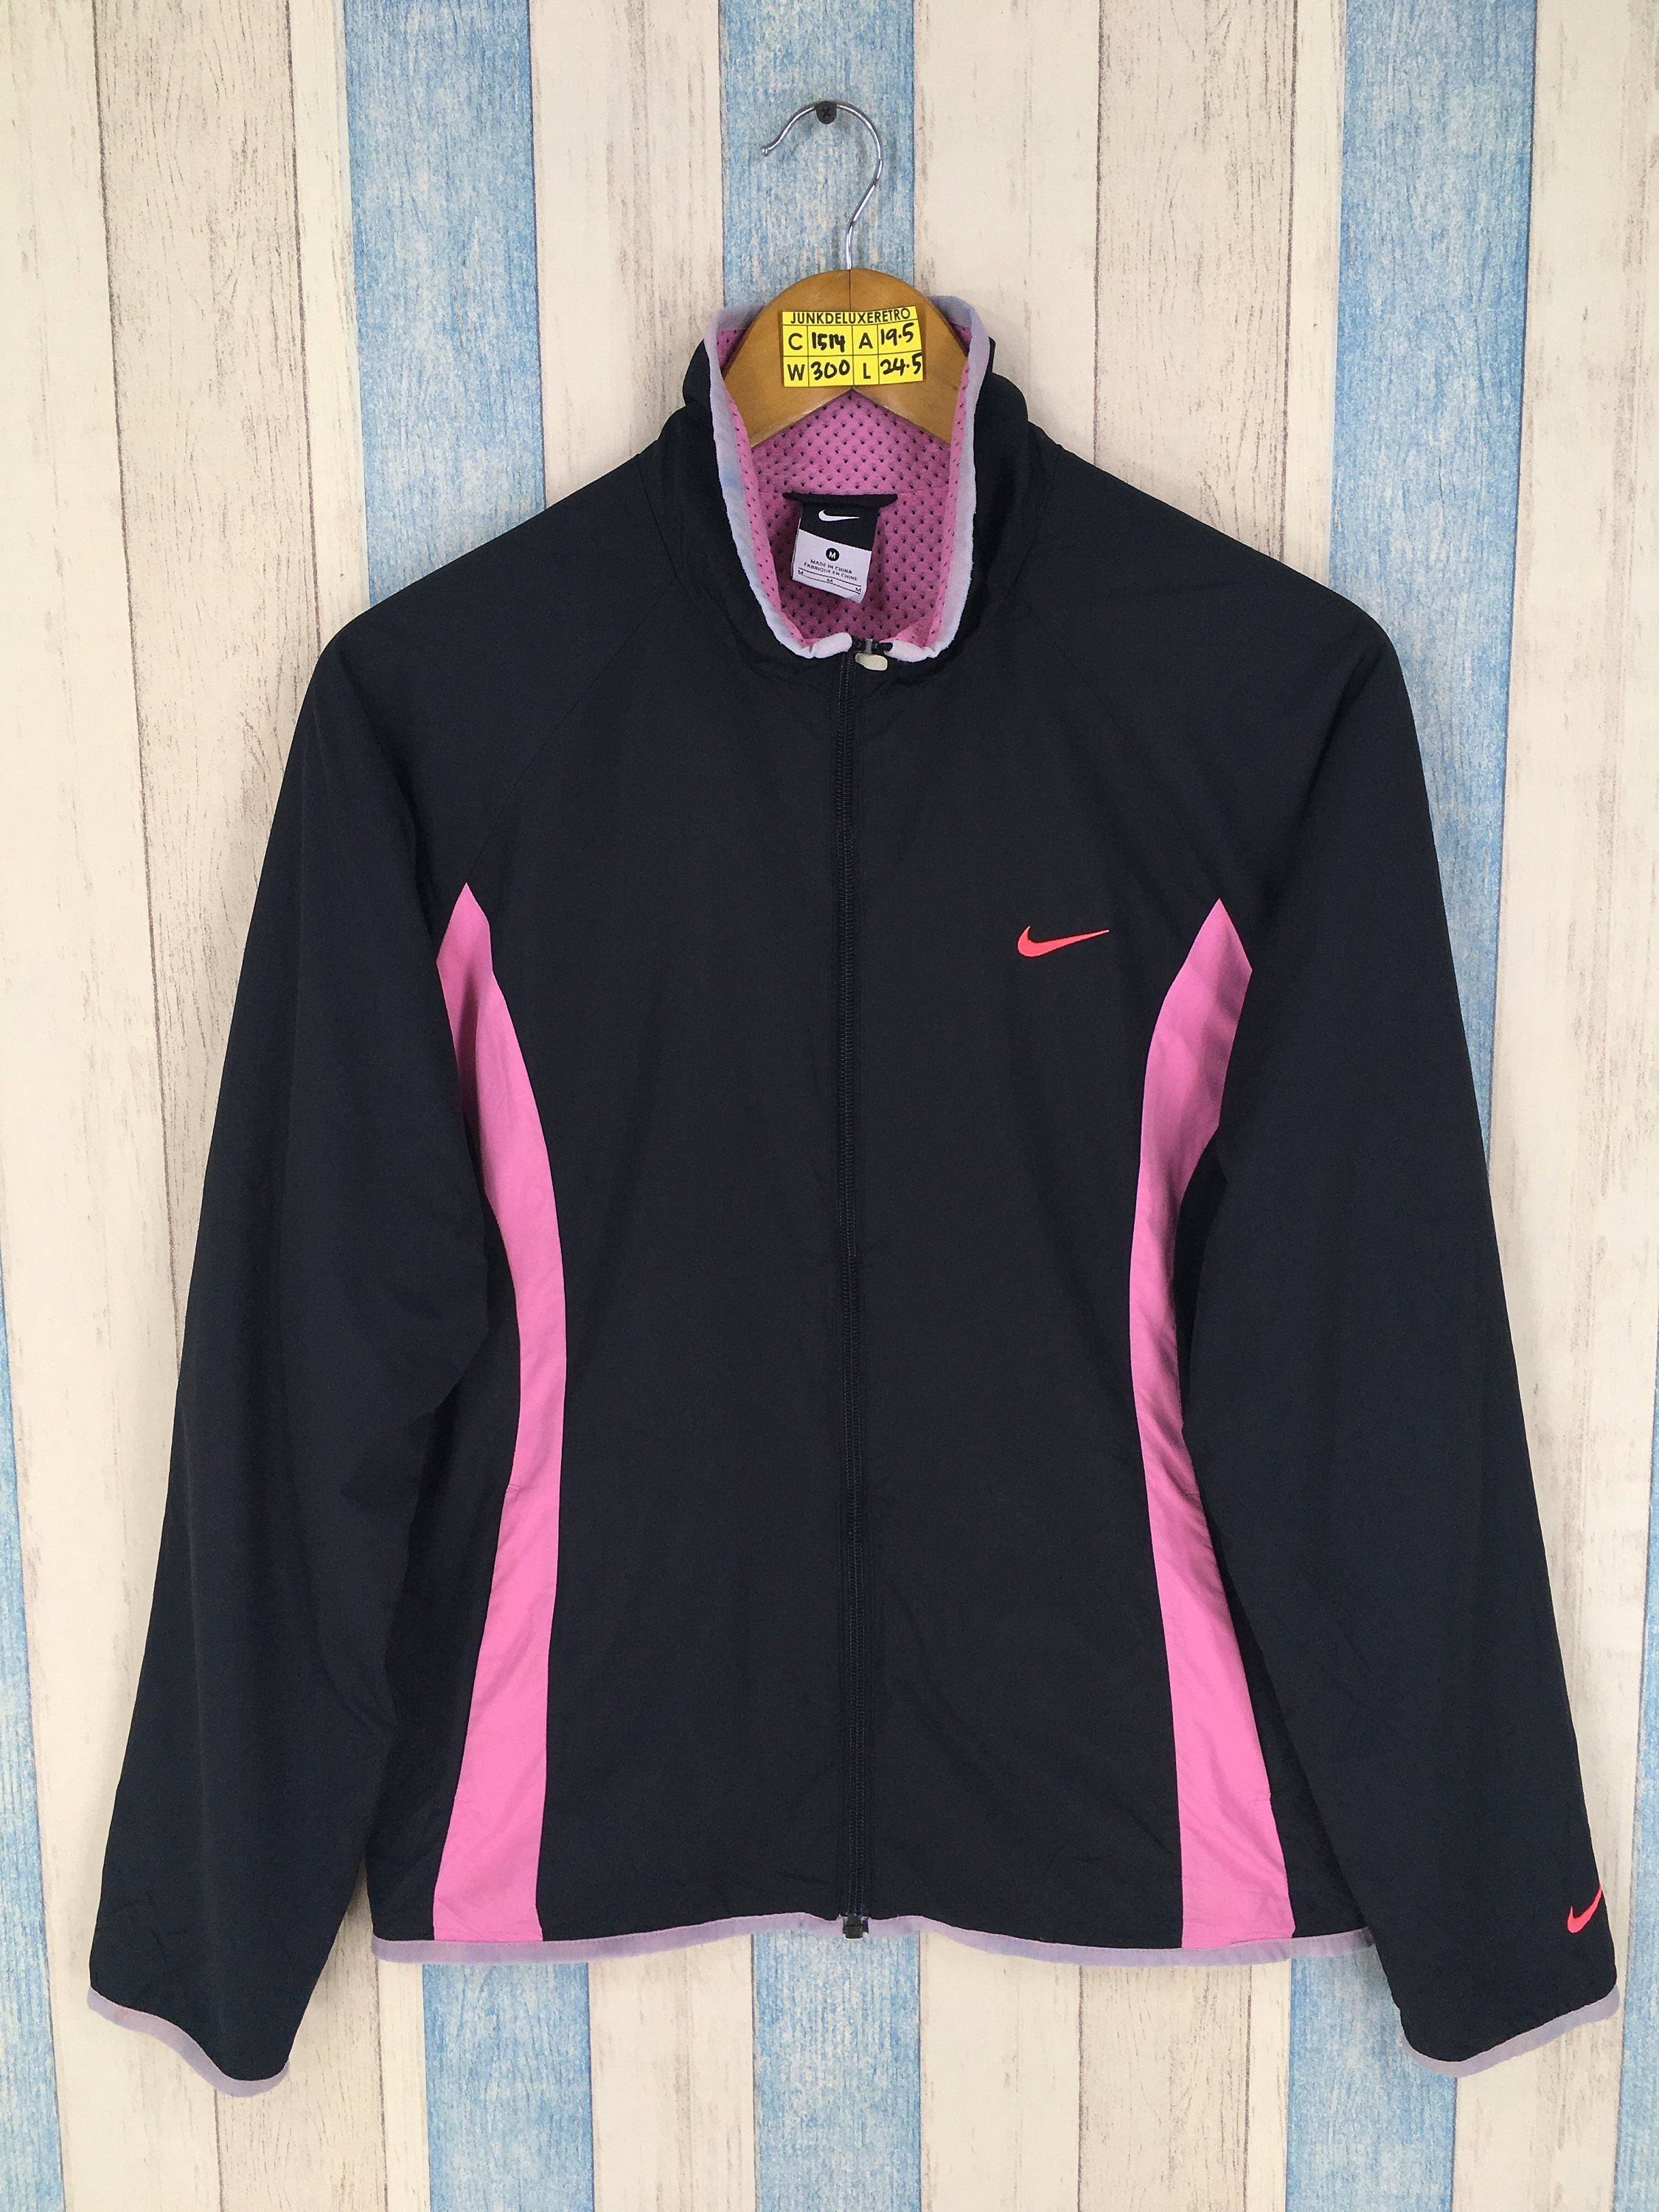 82fa4ca760f4 NIKE Windbreaker Women Medium Vintage 90s Nike Streetwear Black Nike Swoosh  Sportswear Nike Air Windrunner Training